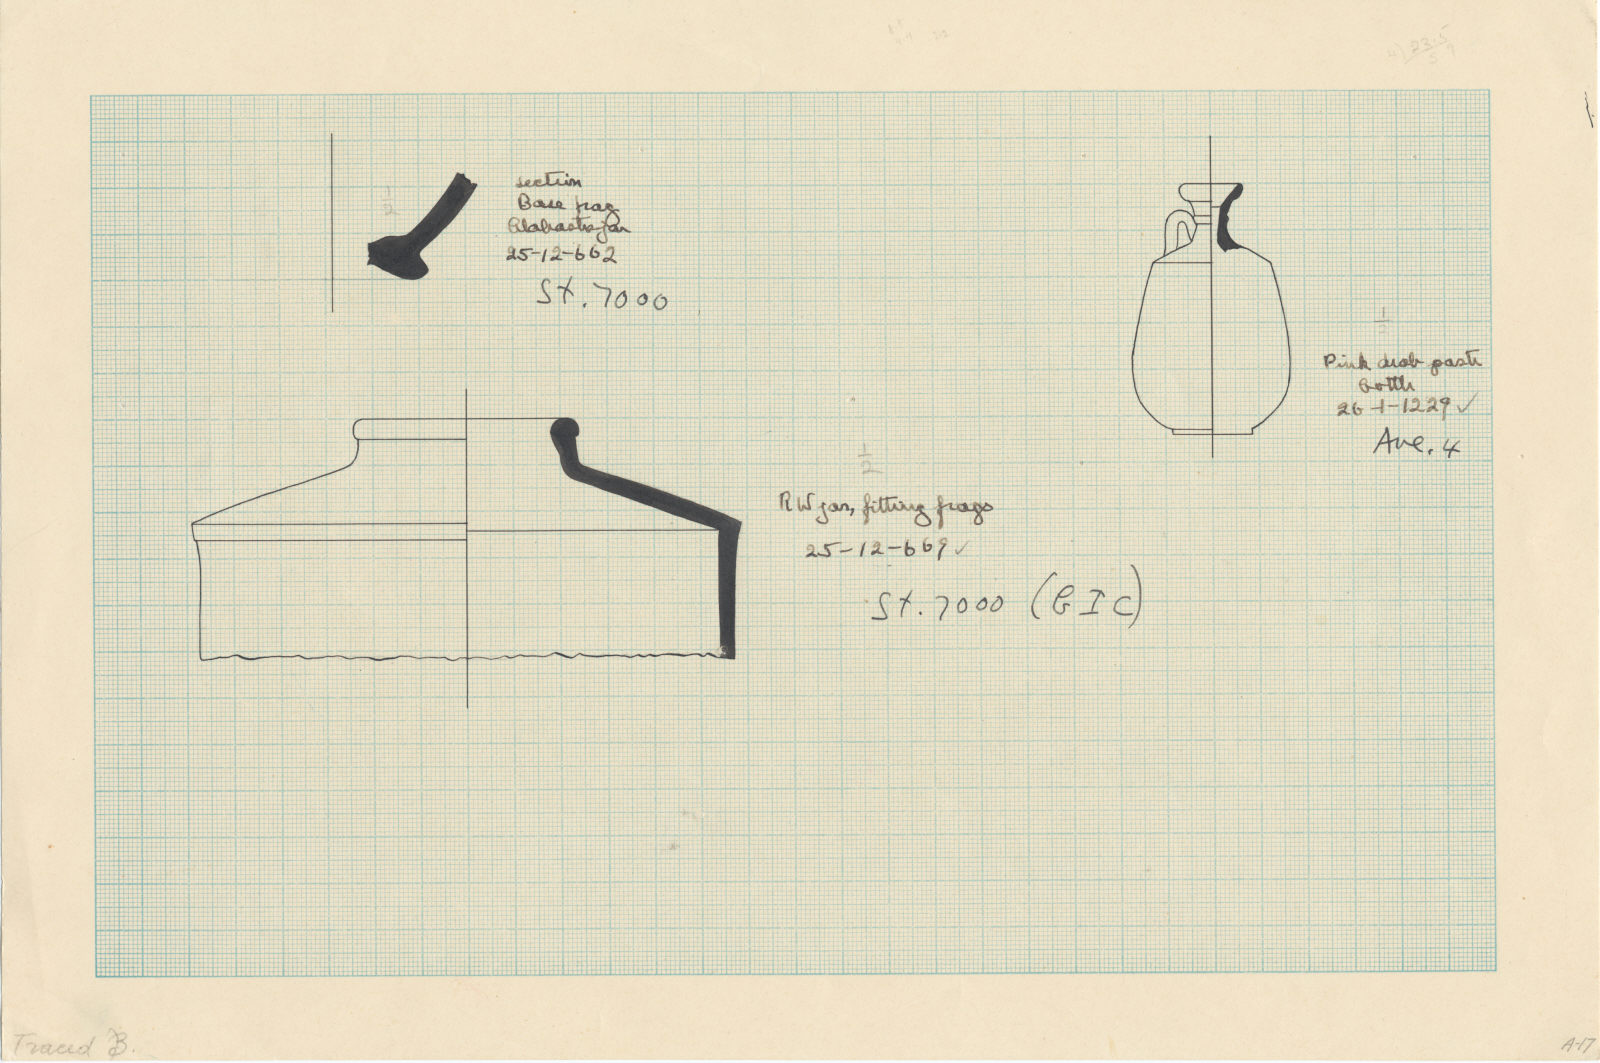 Drawings: Objects from Street Avenue G 4 and G 7000